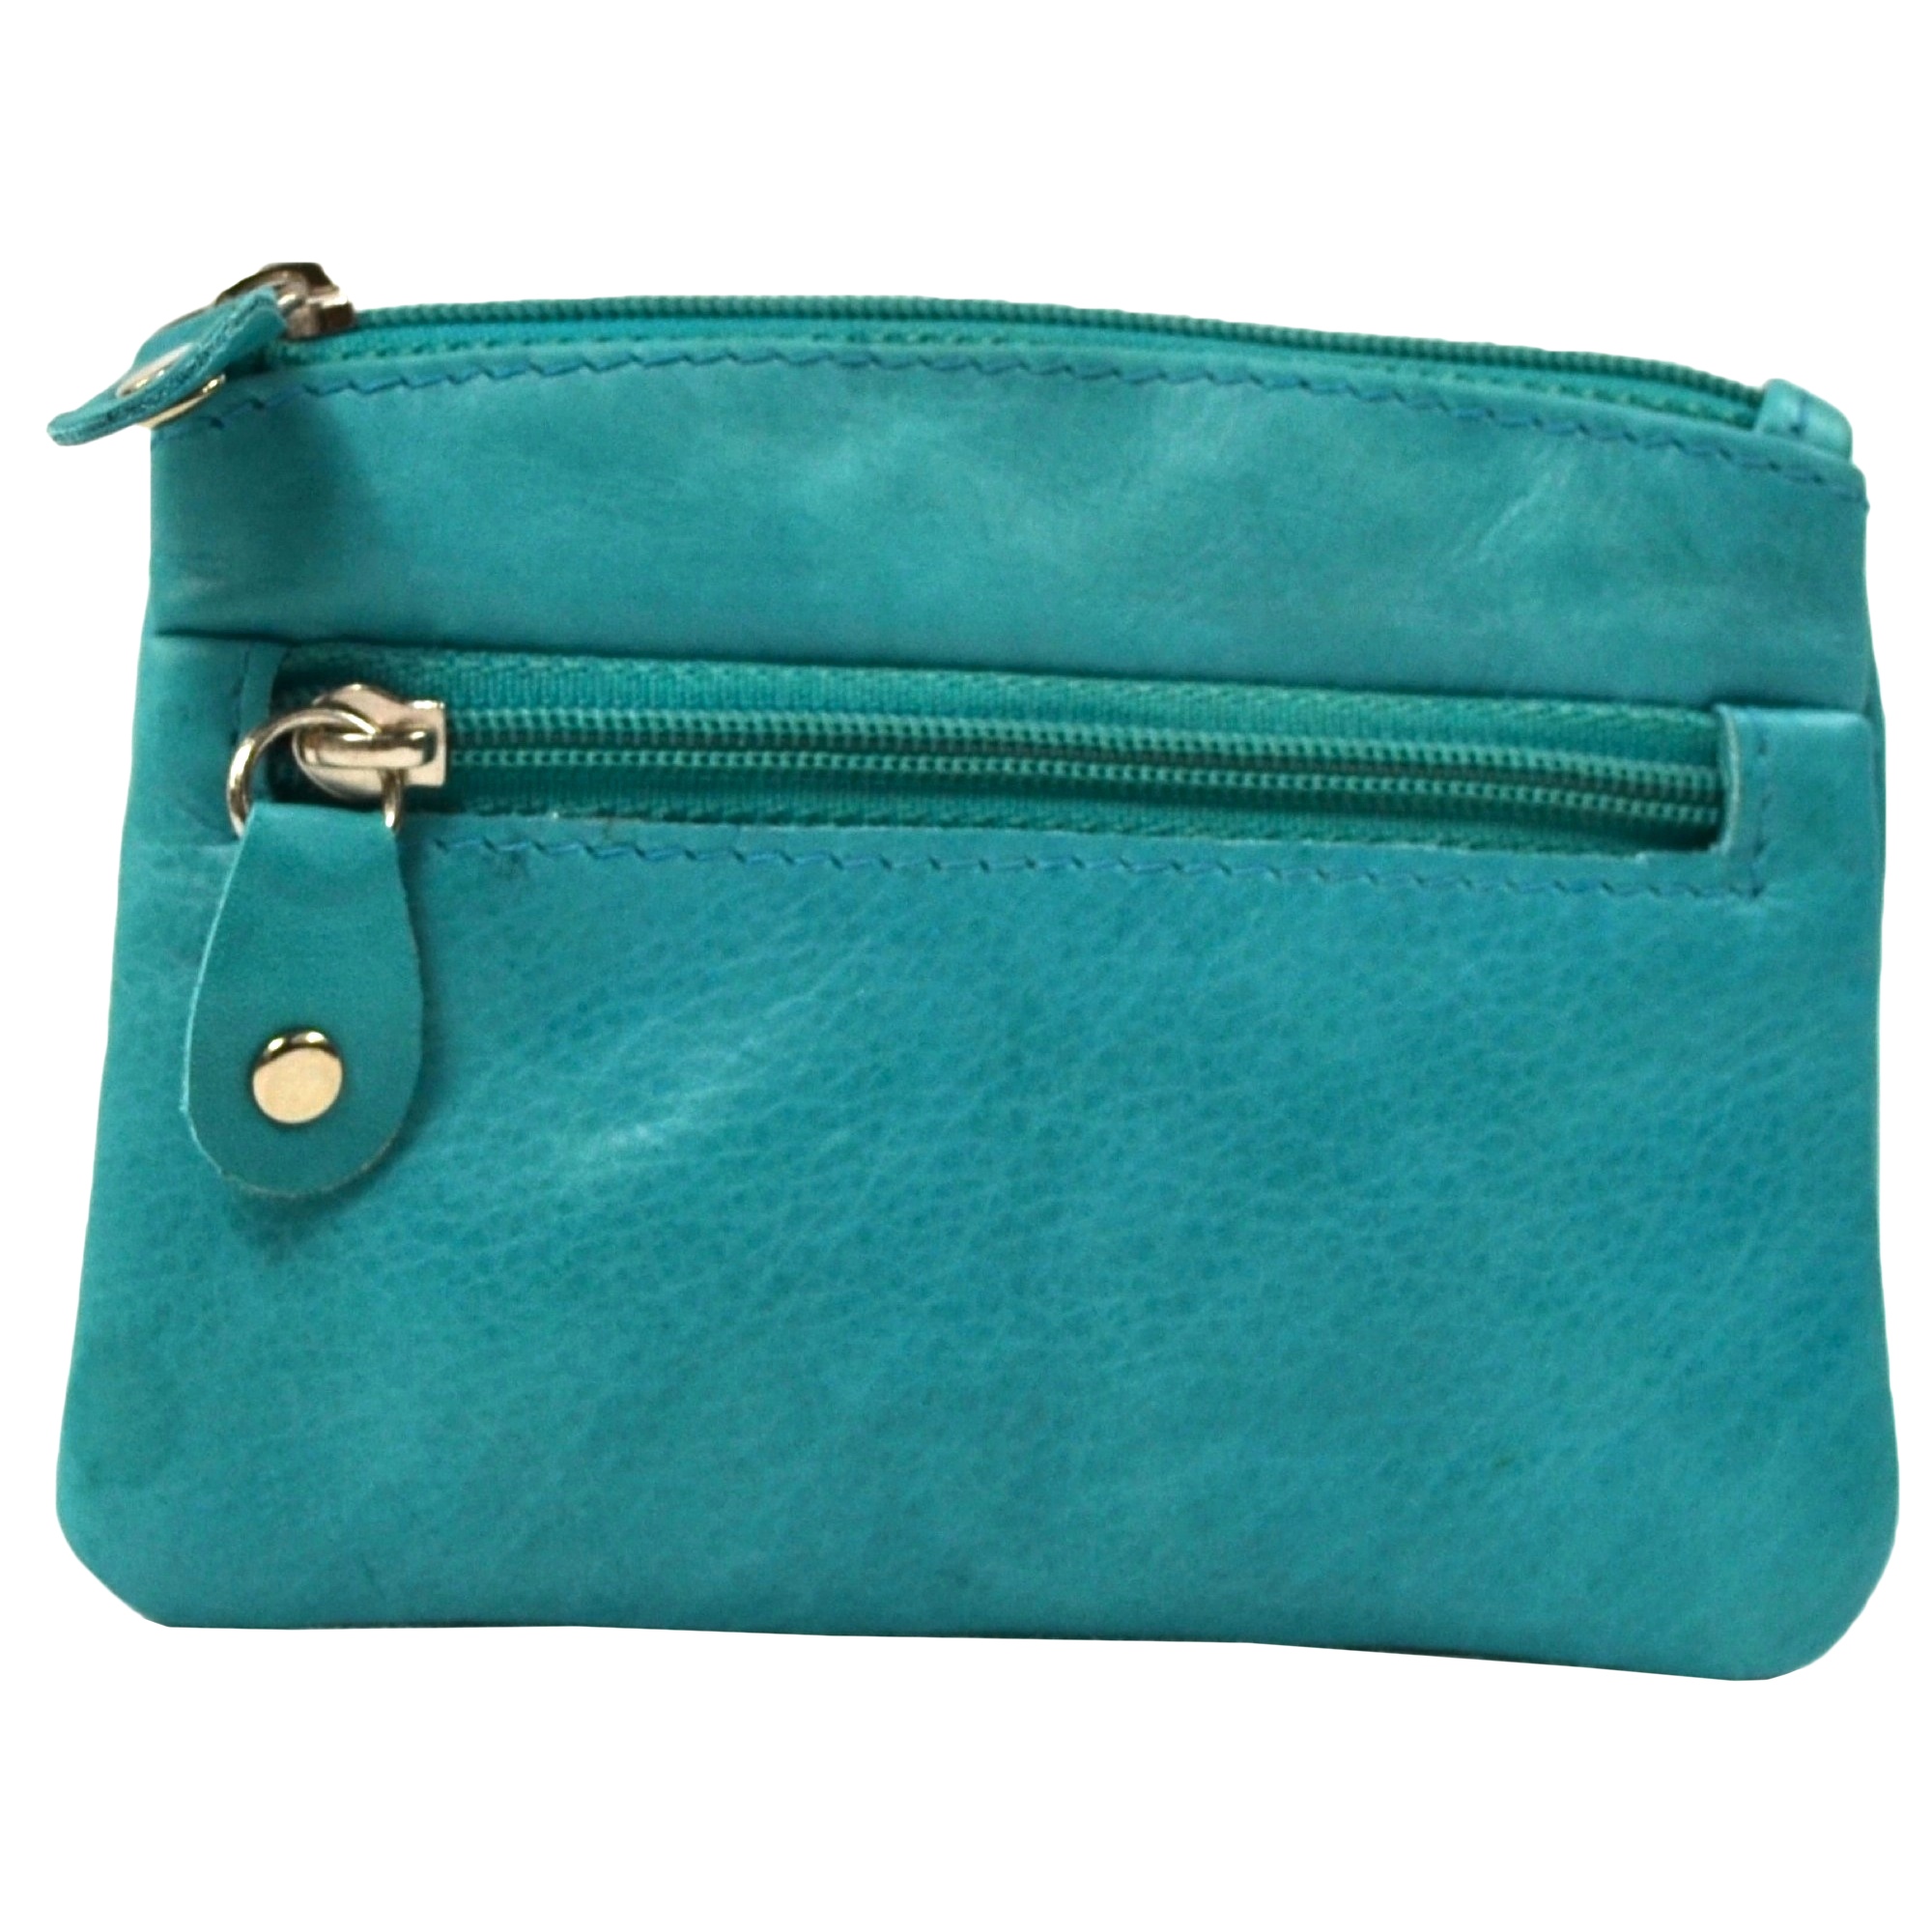 Tilly - Butter Soft Leather Coin Purse